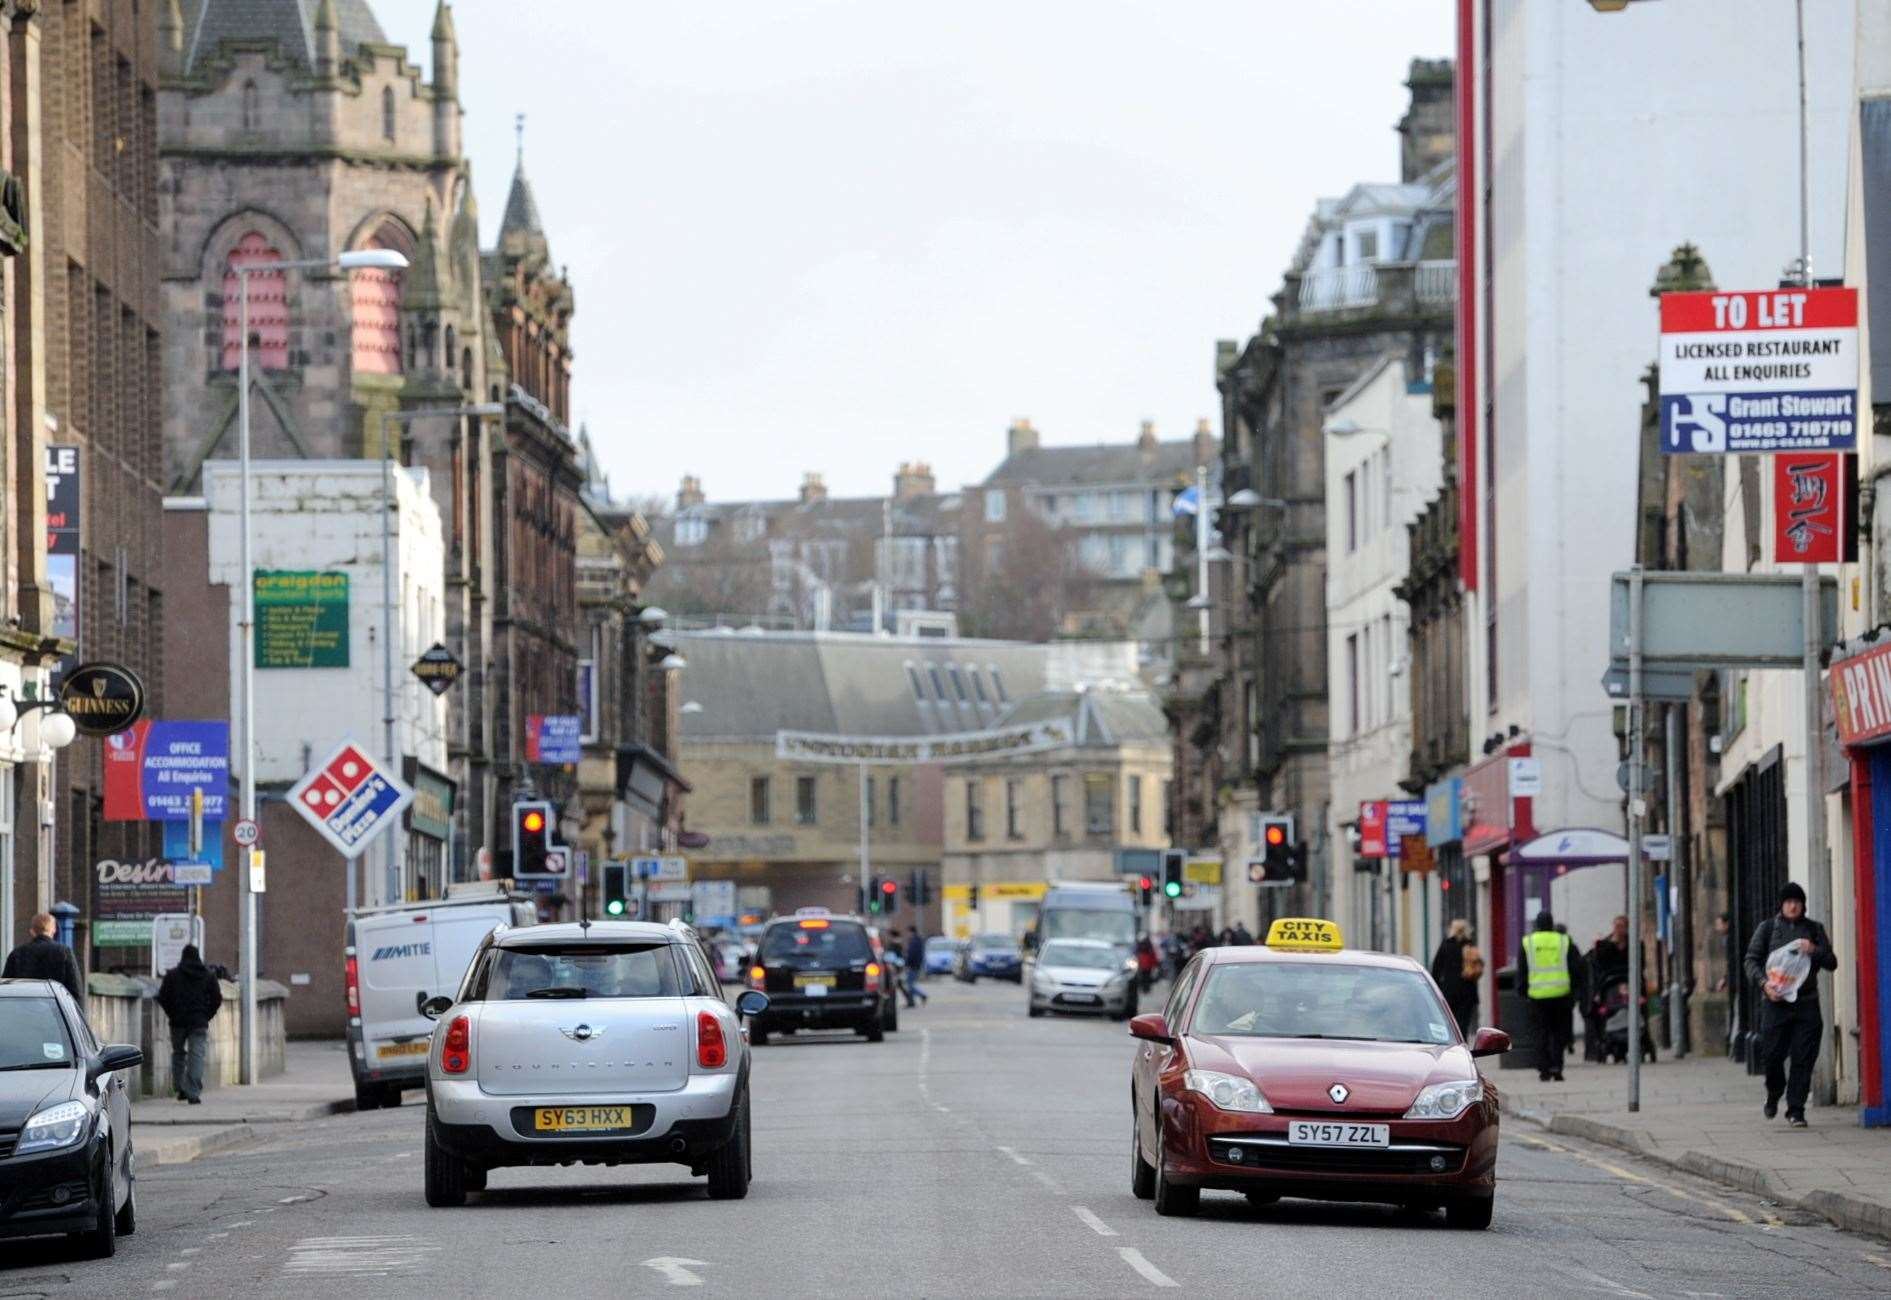 Road resurfacing planned for Academy Street – traffic delays expected